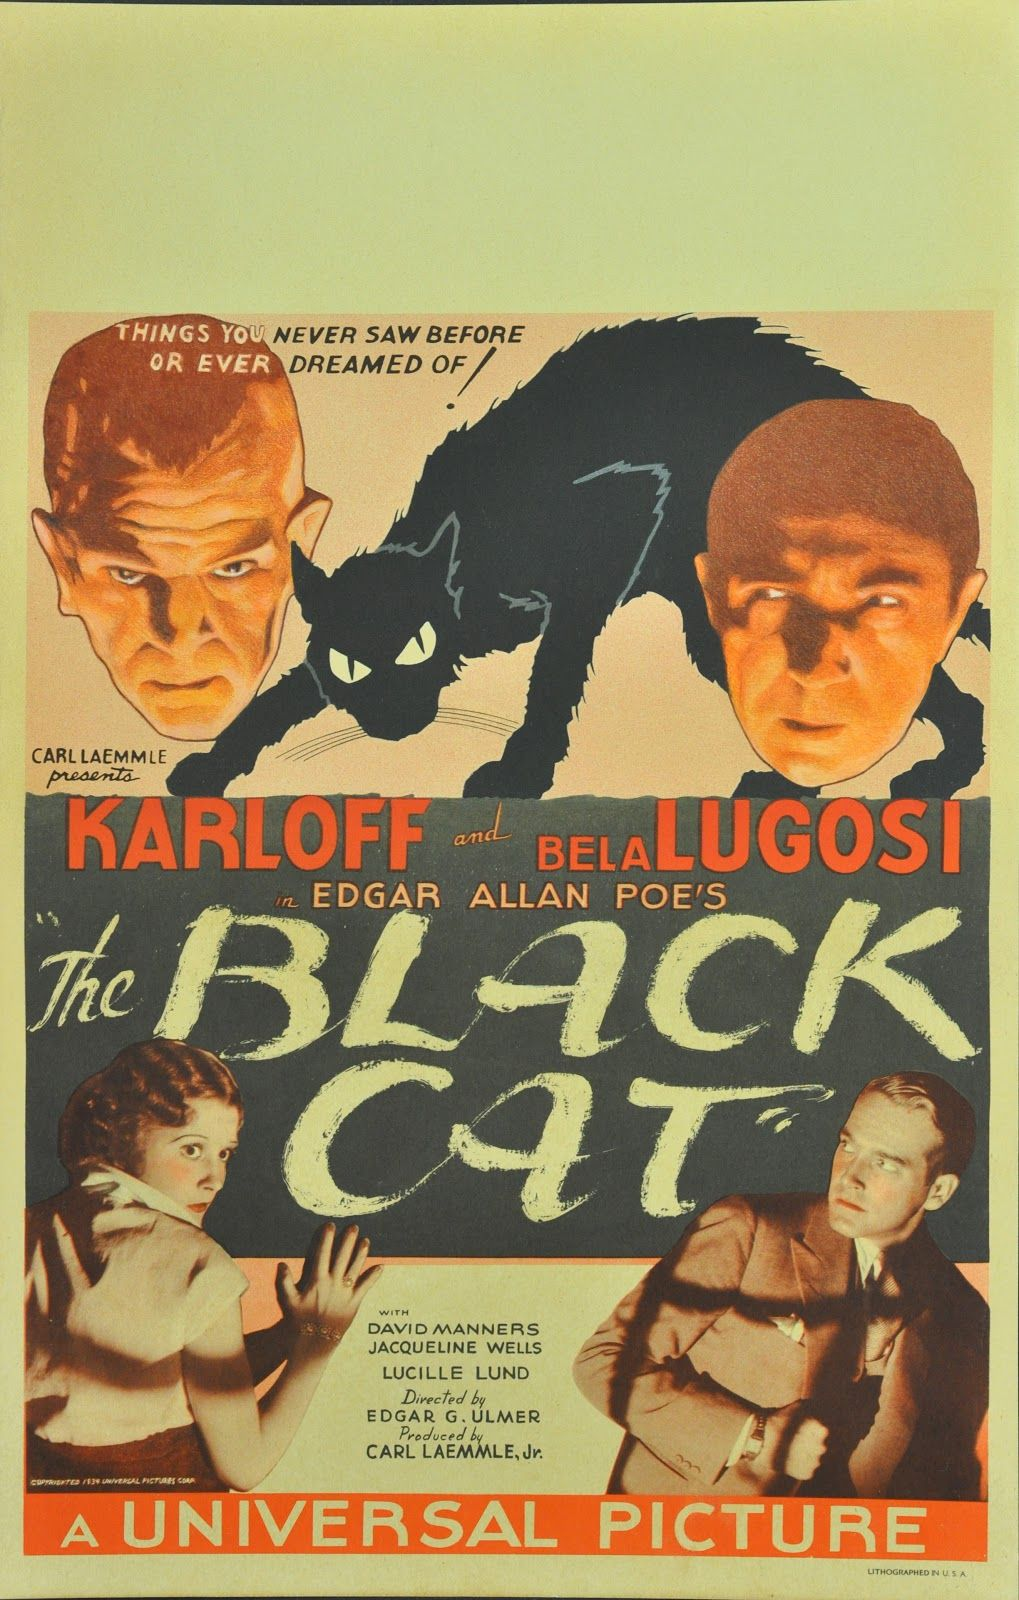 THE+BLACK+CAT+FINAL movie poster